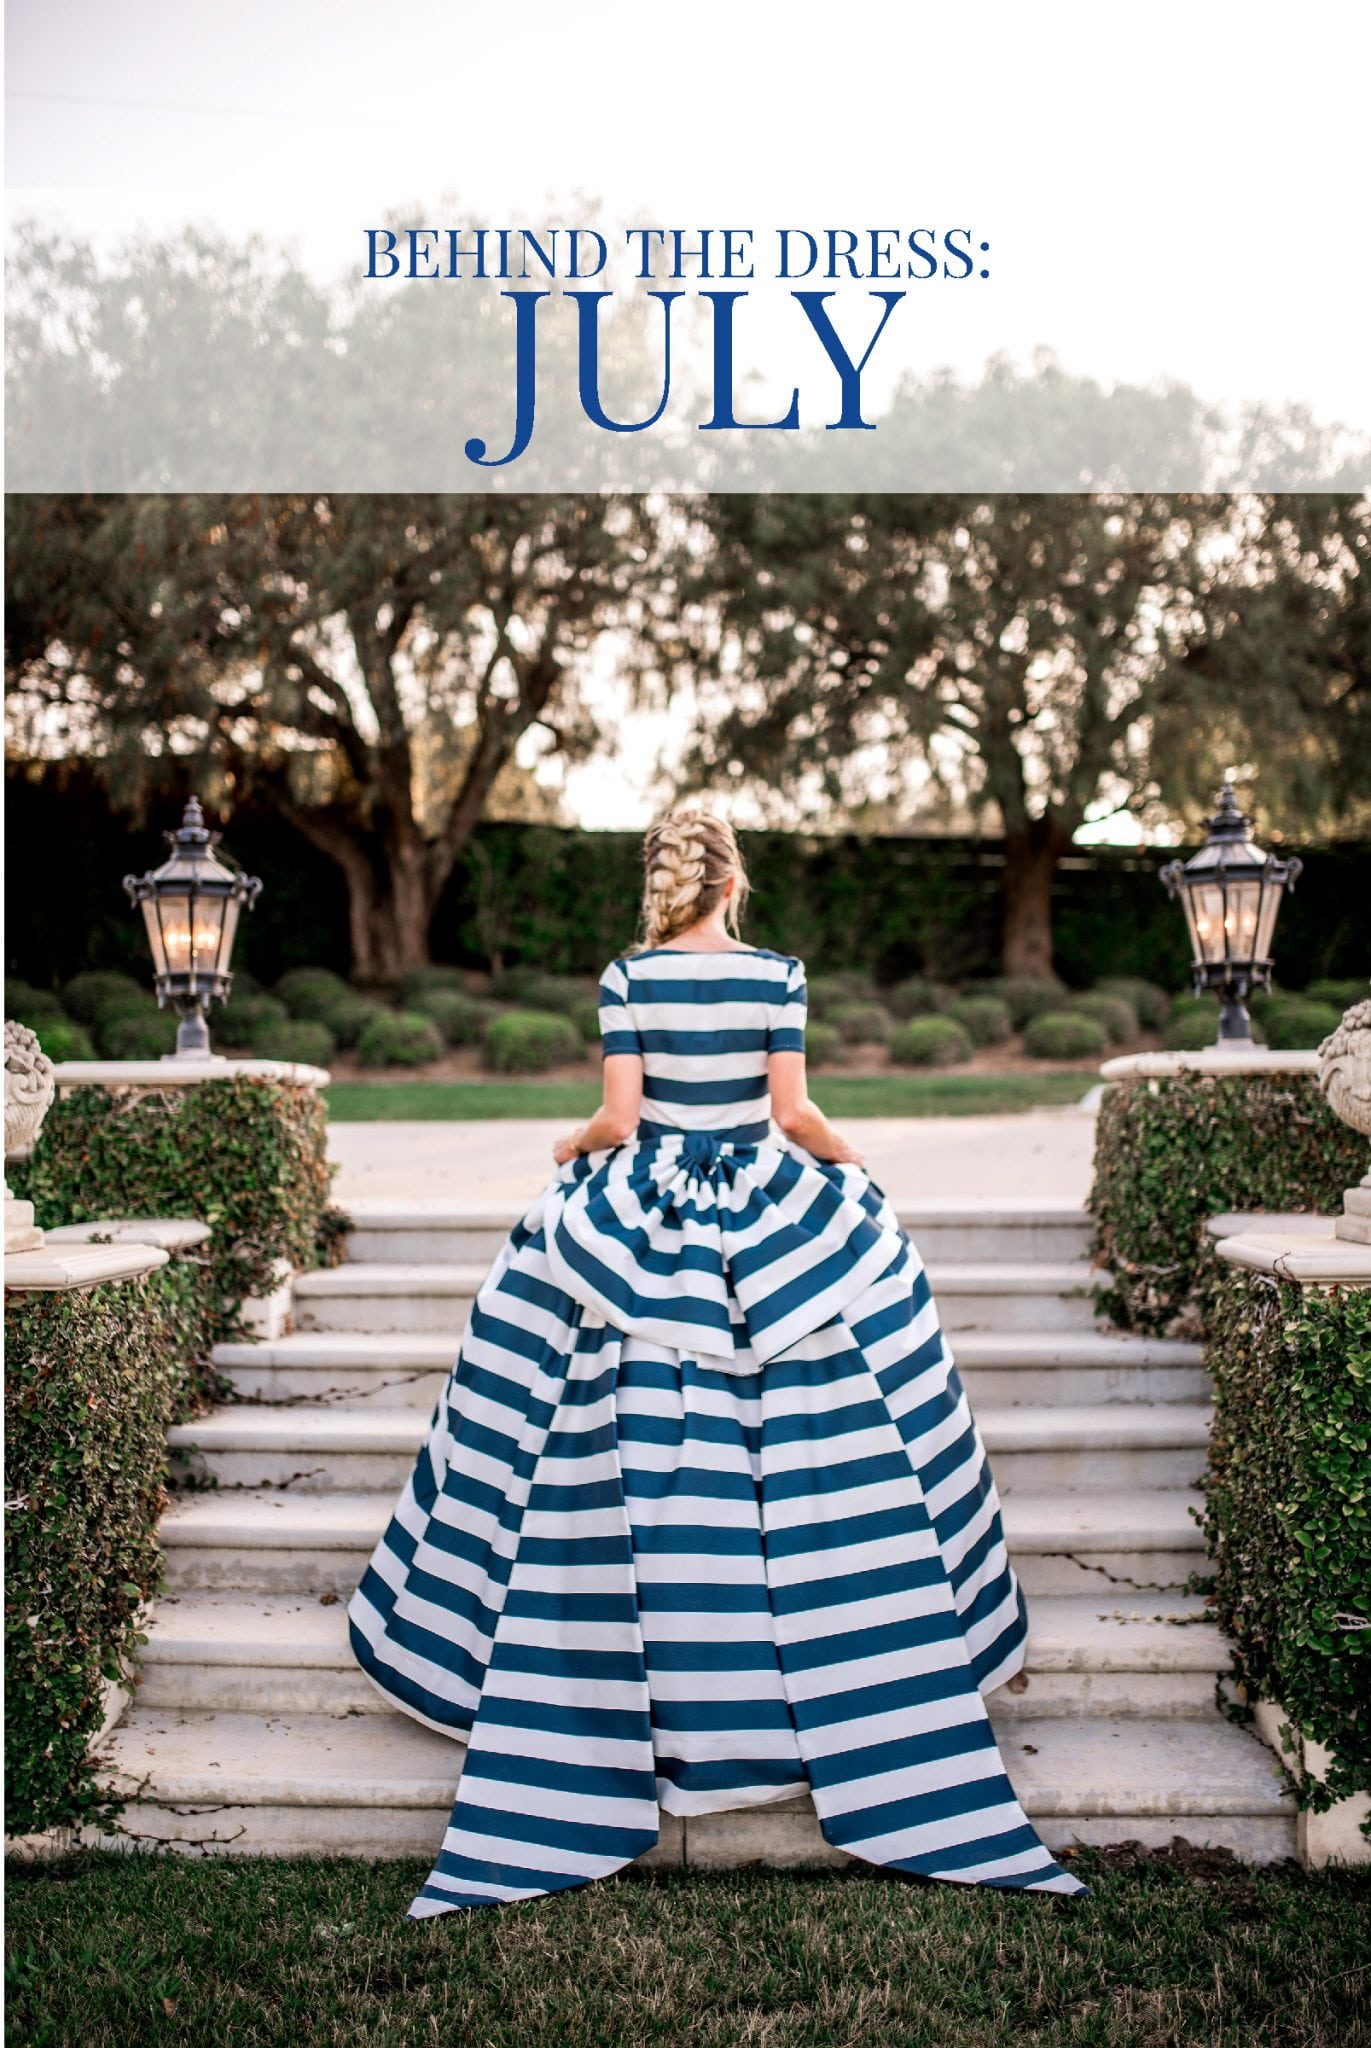 Behind The Dress: July